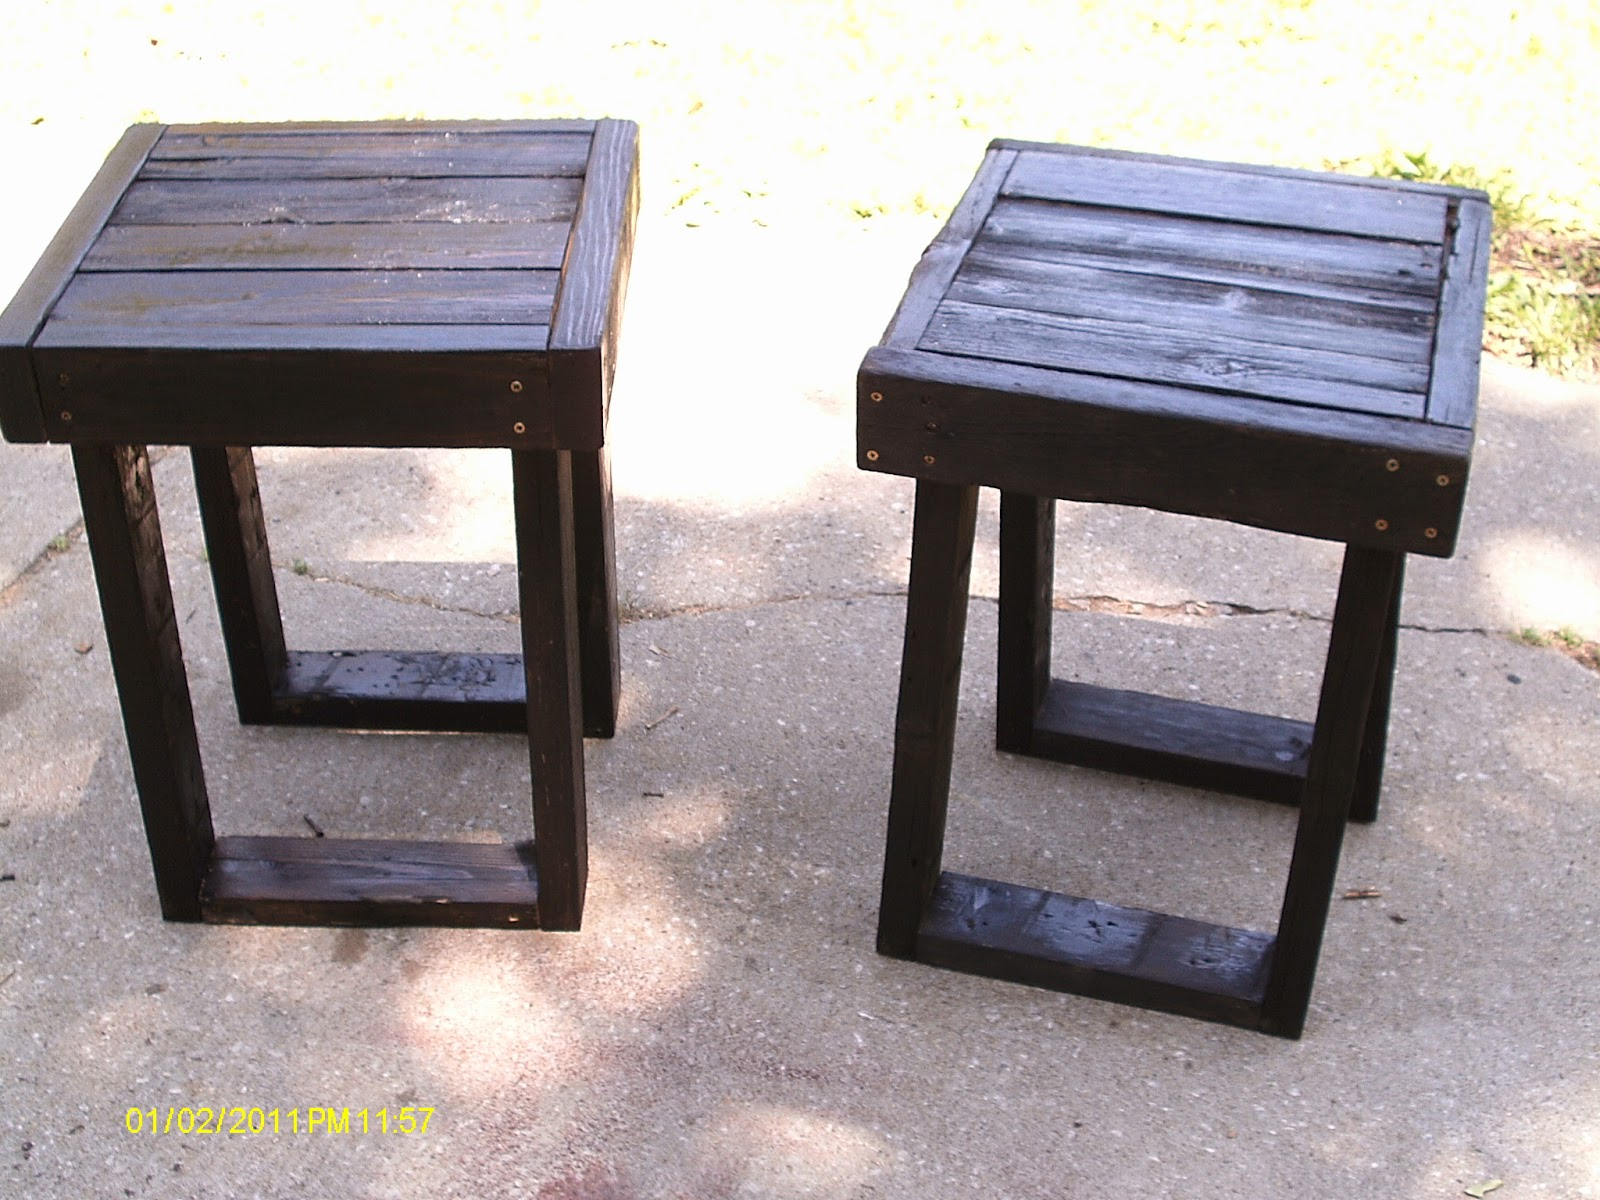 Rustic coffee tables unique and handmade from the log - Handmade Rustic Log Furniture